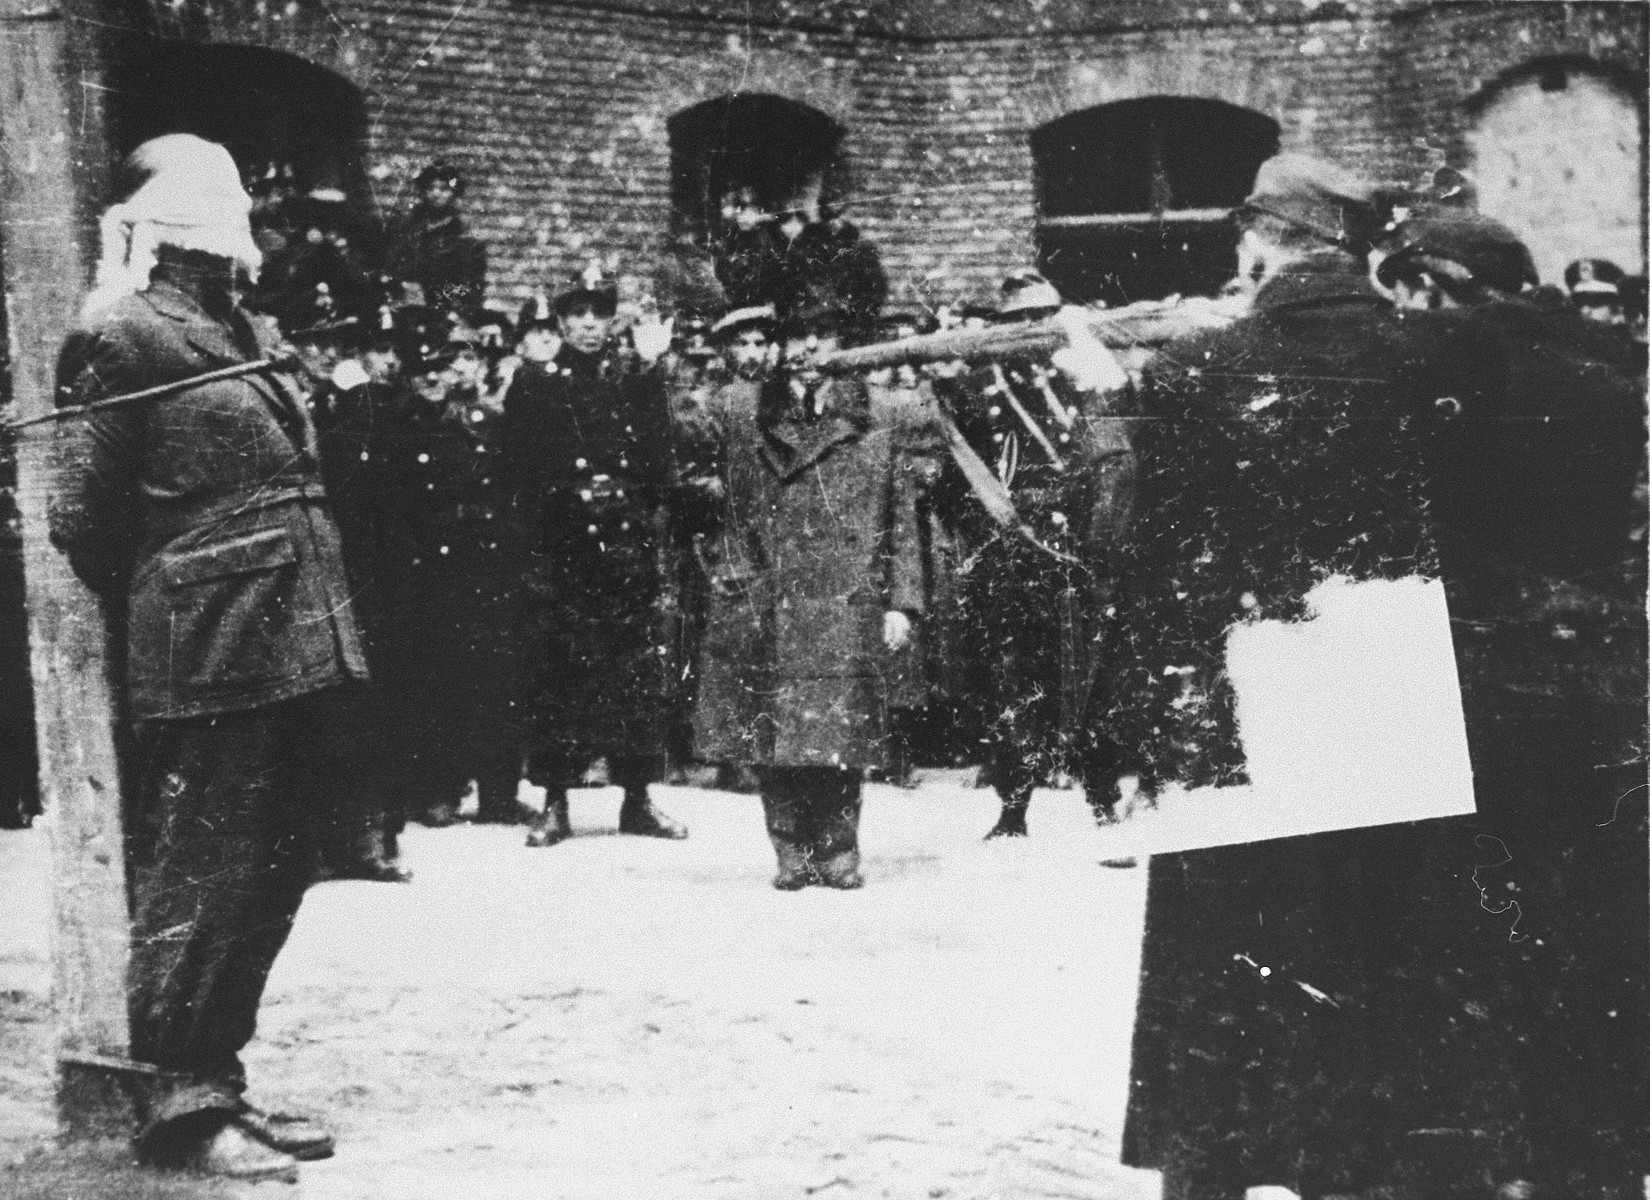 "Hungarian soldiers prepare to execute Ferenc Rajniss, the former Minister of Religious Affairs and Education in the Szalasi government, and editor of the right-wing, anti-Semitic journal ""Magyar Futar.""  Following his activities as the editor of the right-wing, anti-Semitic journal, ""Magyar Futar,"" Ferenc Rajniss served as the Minister for Religious Affairs and Education in the collaborationist government of Ferenc Szalasi.  His was the third postwar war crimes case to be tried by the People's Tribunal in the Budapest Academy of Music.  Proceedings began on November 28, 1945 and ended with Rajniss' conviction on December 7, 1945.  Rajniss was executed on March 12, 1946."